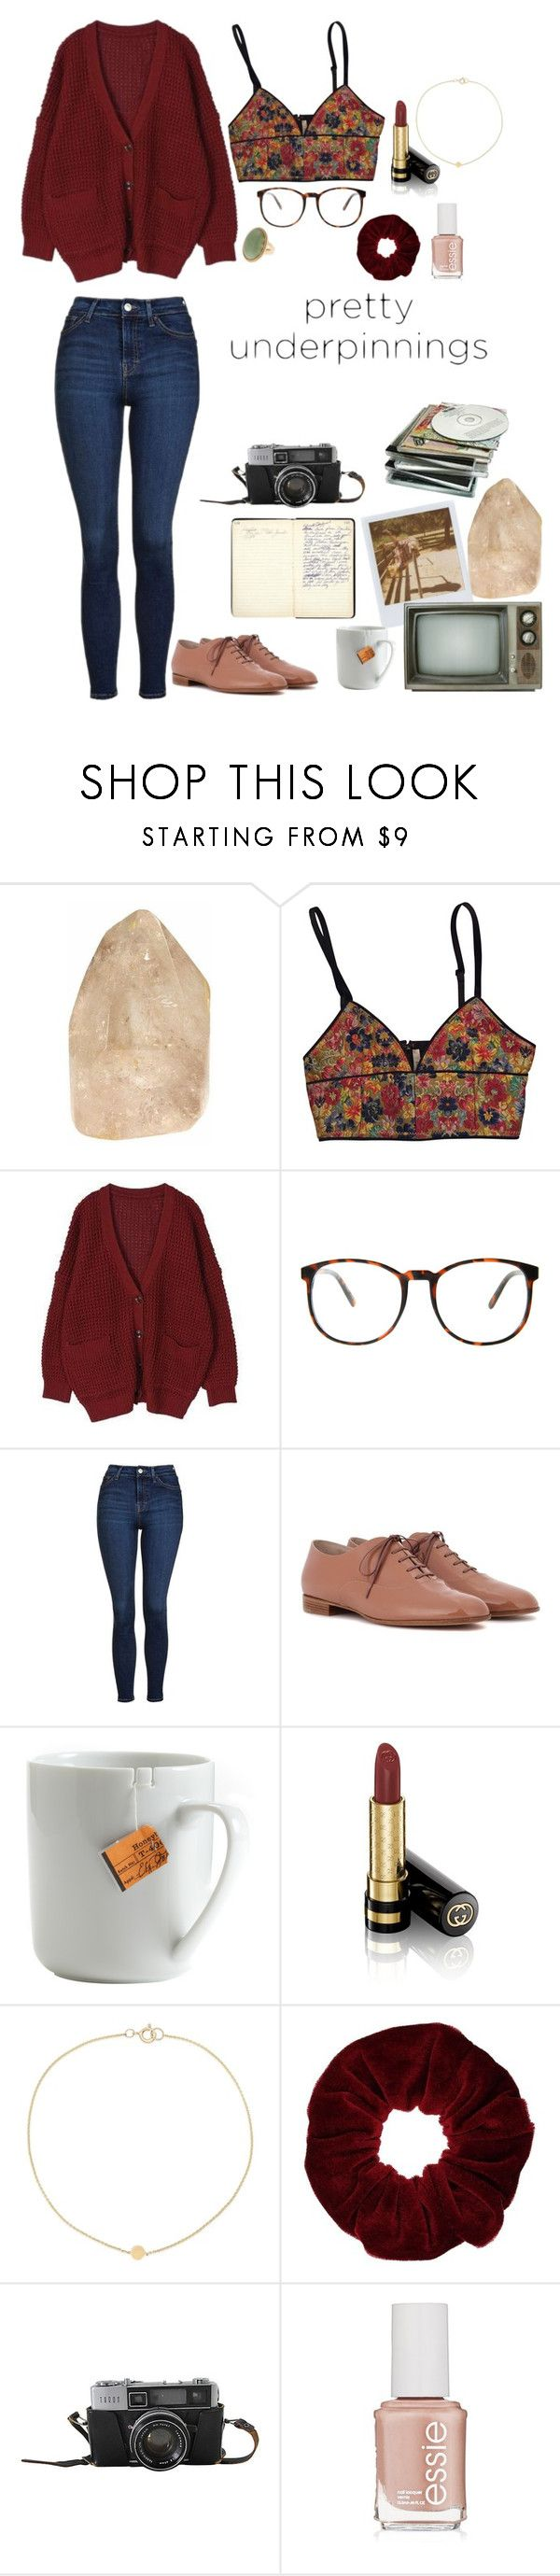 """""""classy vintage"""" by shelbymarie9137 ❤ liked on Polyvore featuring ASOS, Band of Outsiders, Topshop, Gianvito Rossi, le mouton noir & co., Gucci, Miss Selfridge, Essie and vintage"""